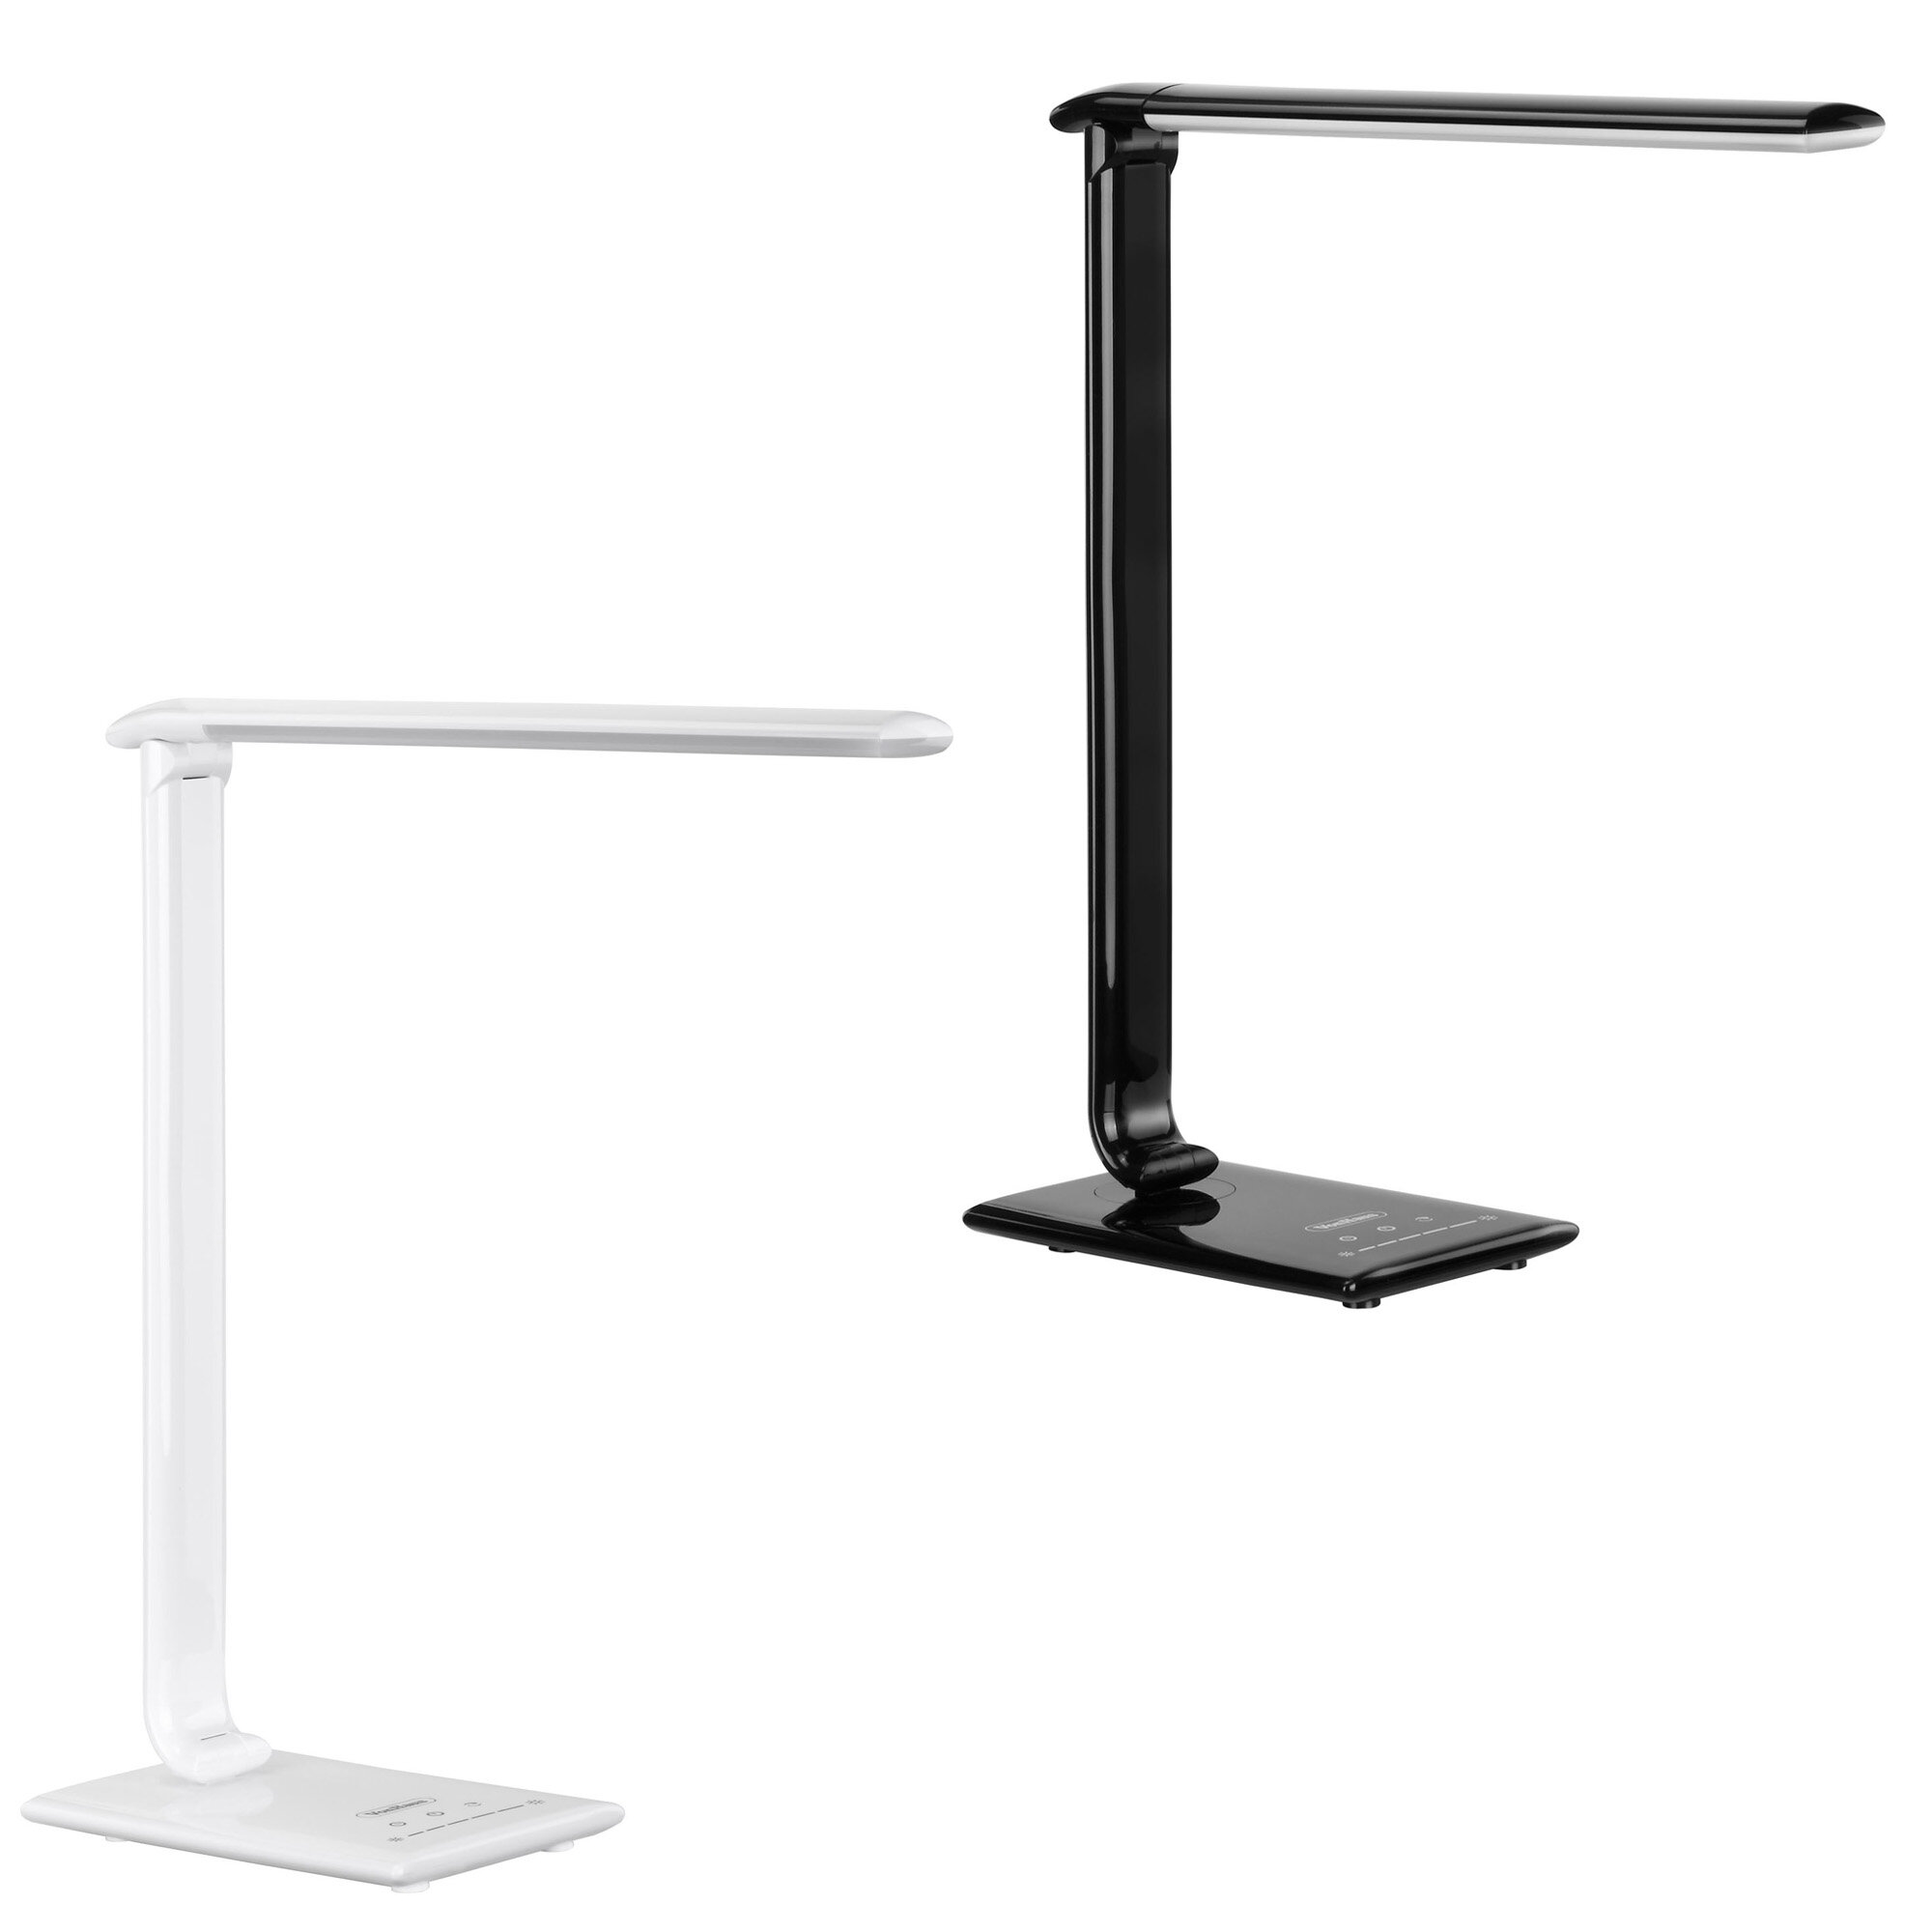 aglaia aukey lamp review desk peter fields led